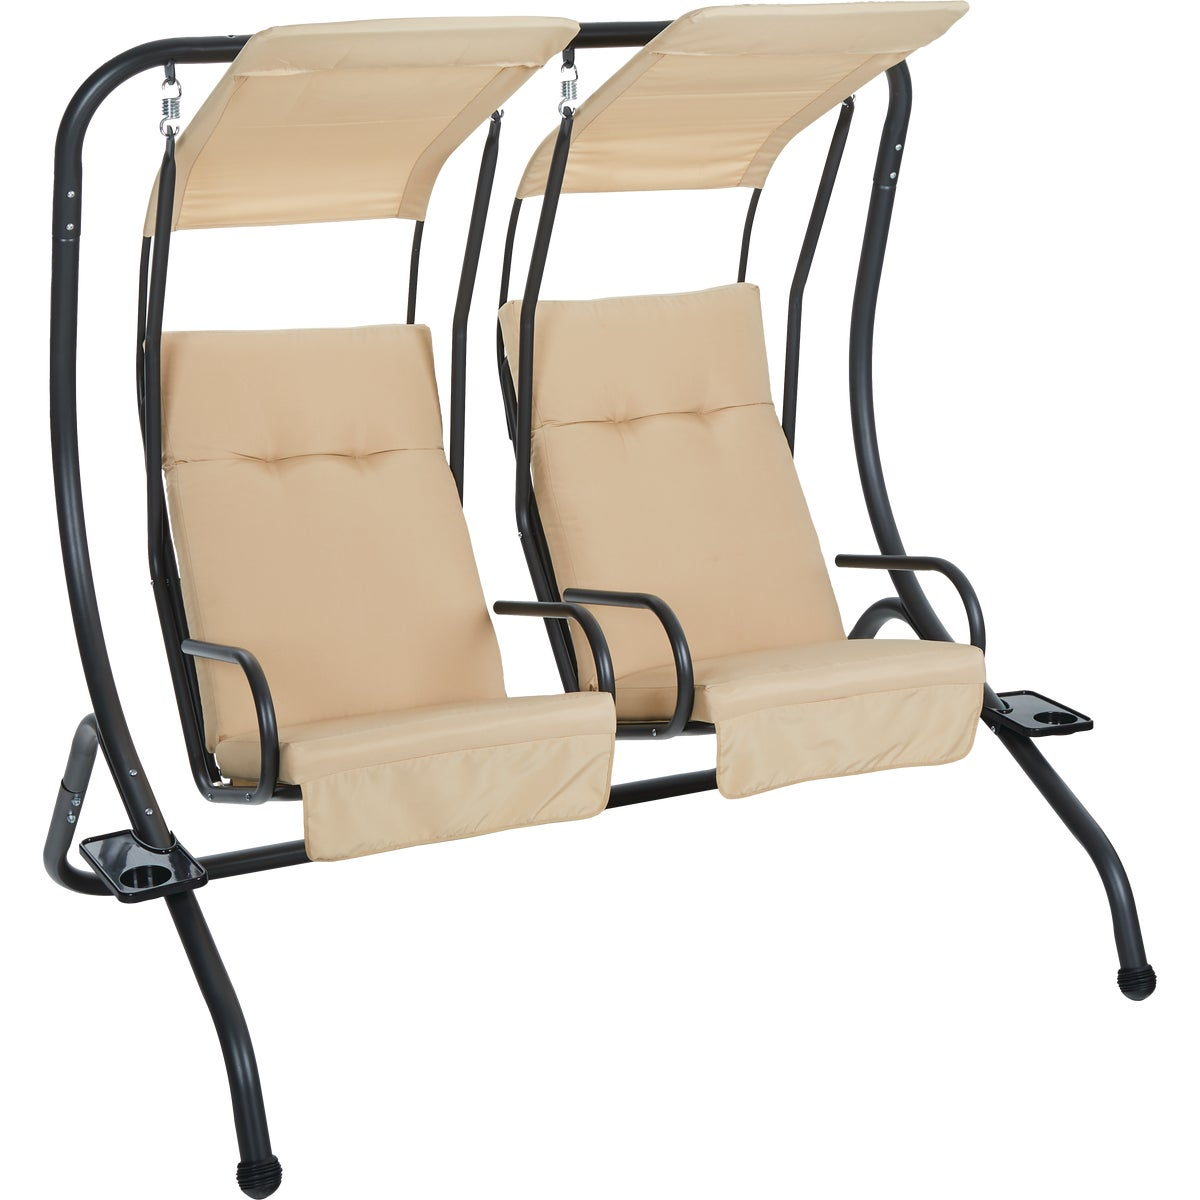 2-SEAT INDEPENDENT SWING - AN3413B by Do it Best